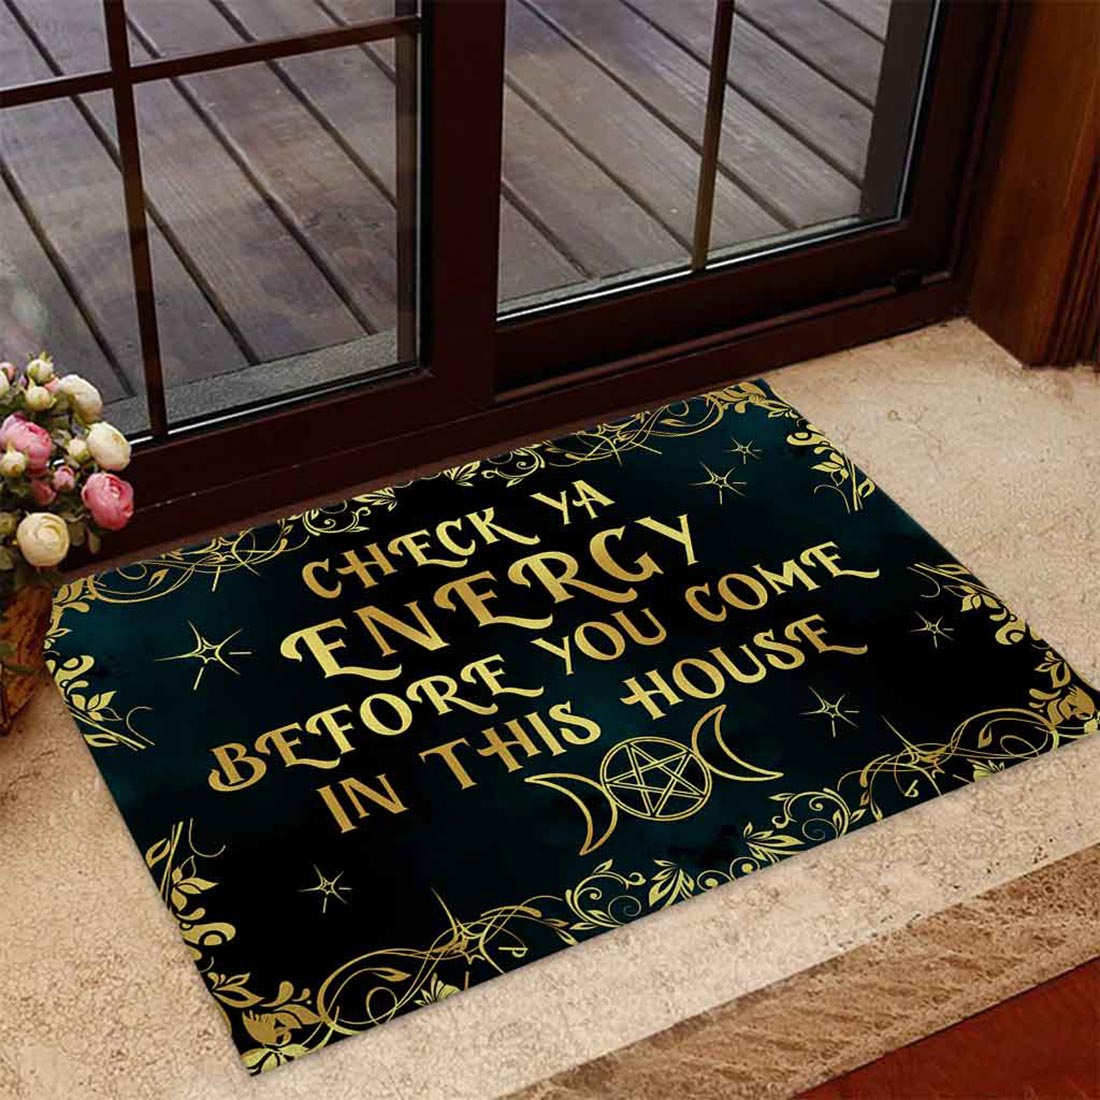 Check ya energy before you come in this house witch doormat